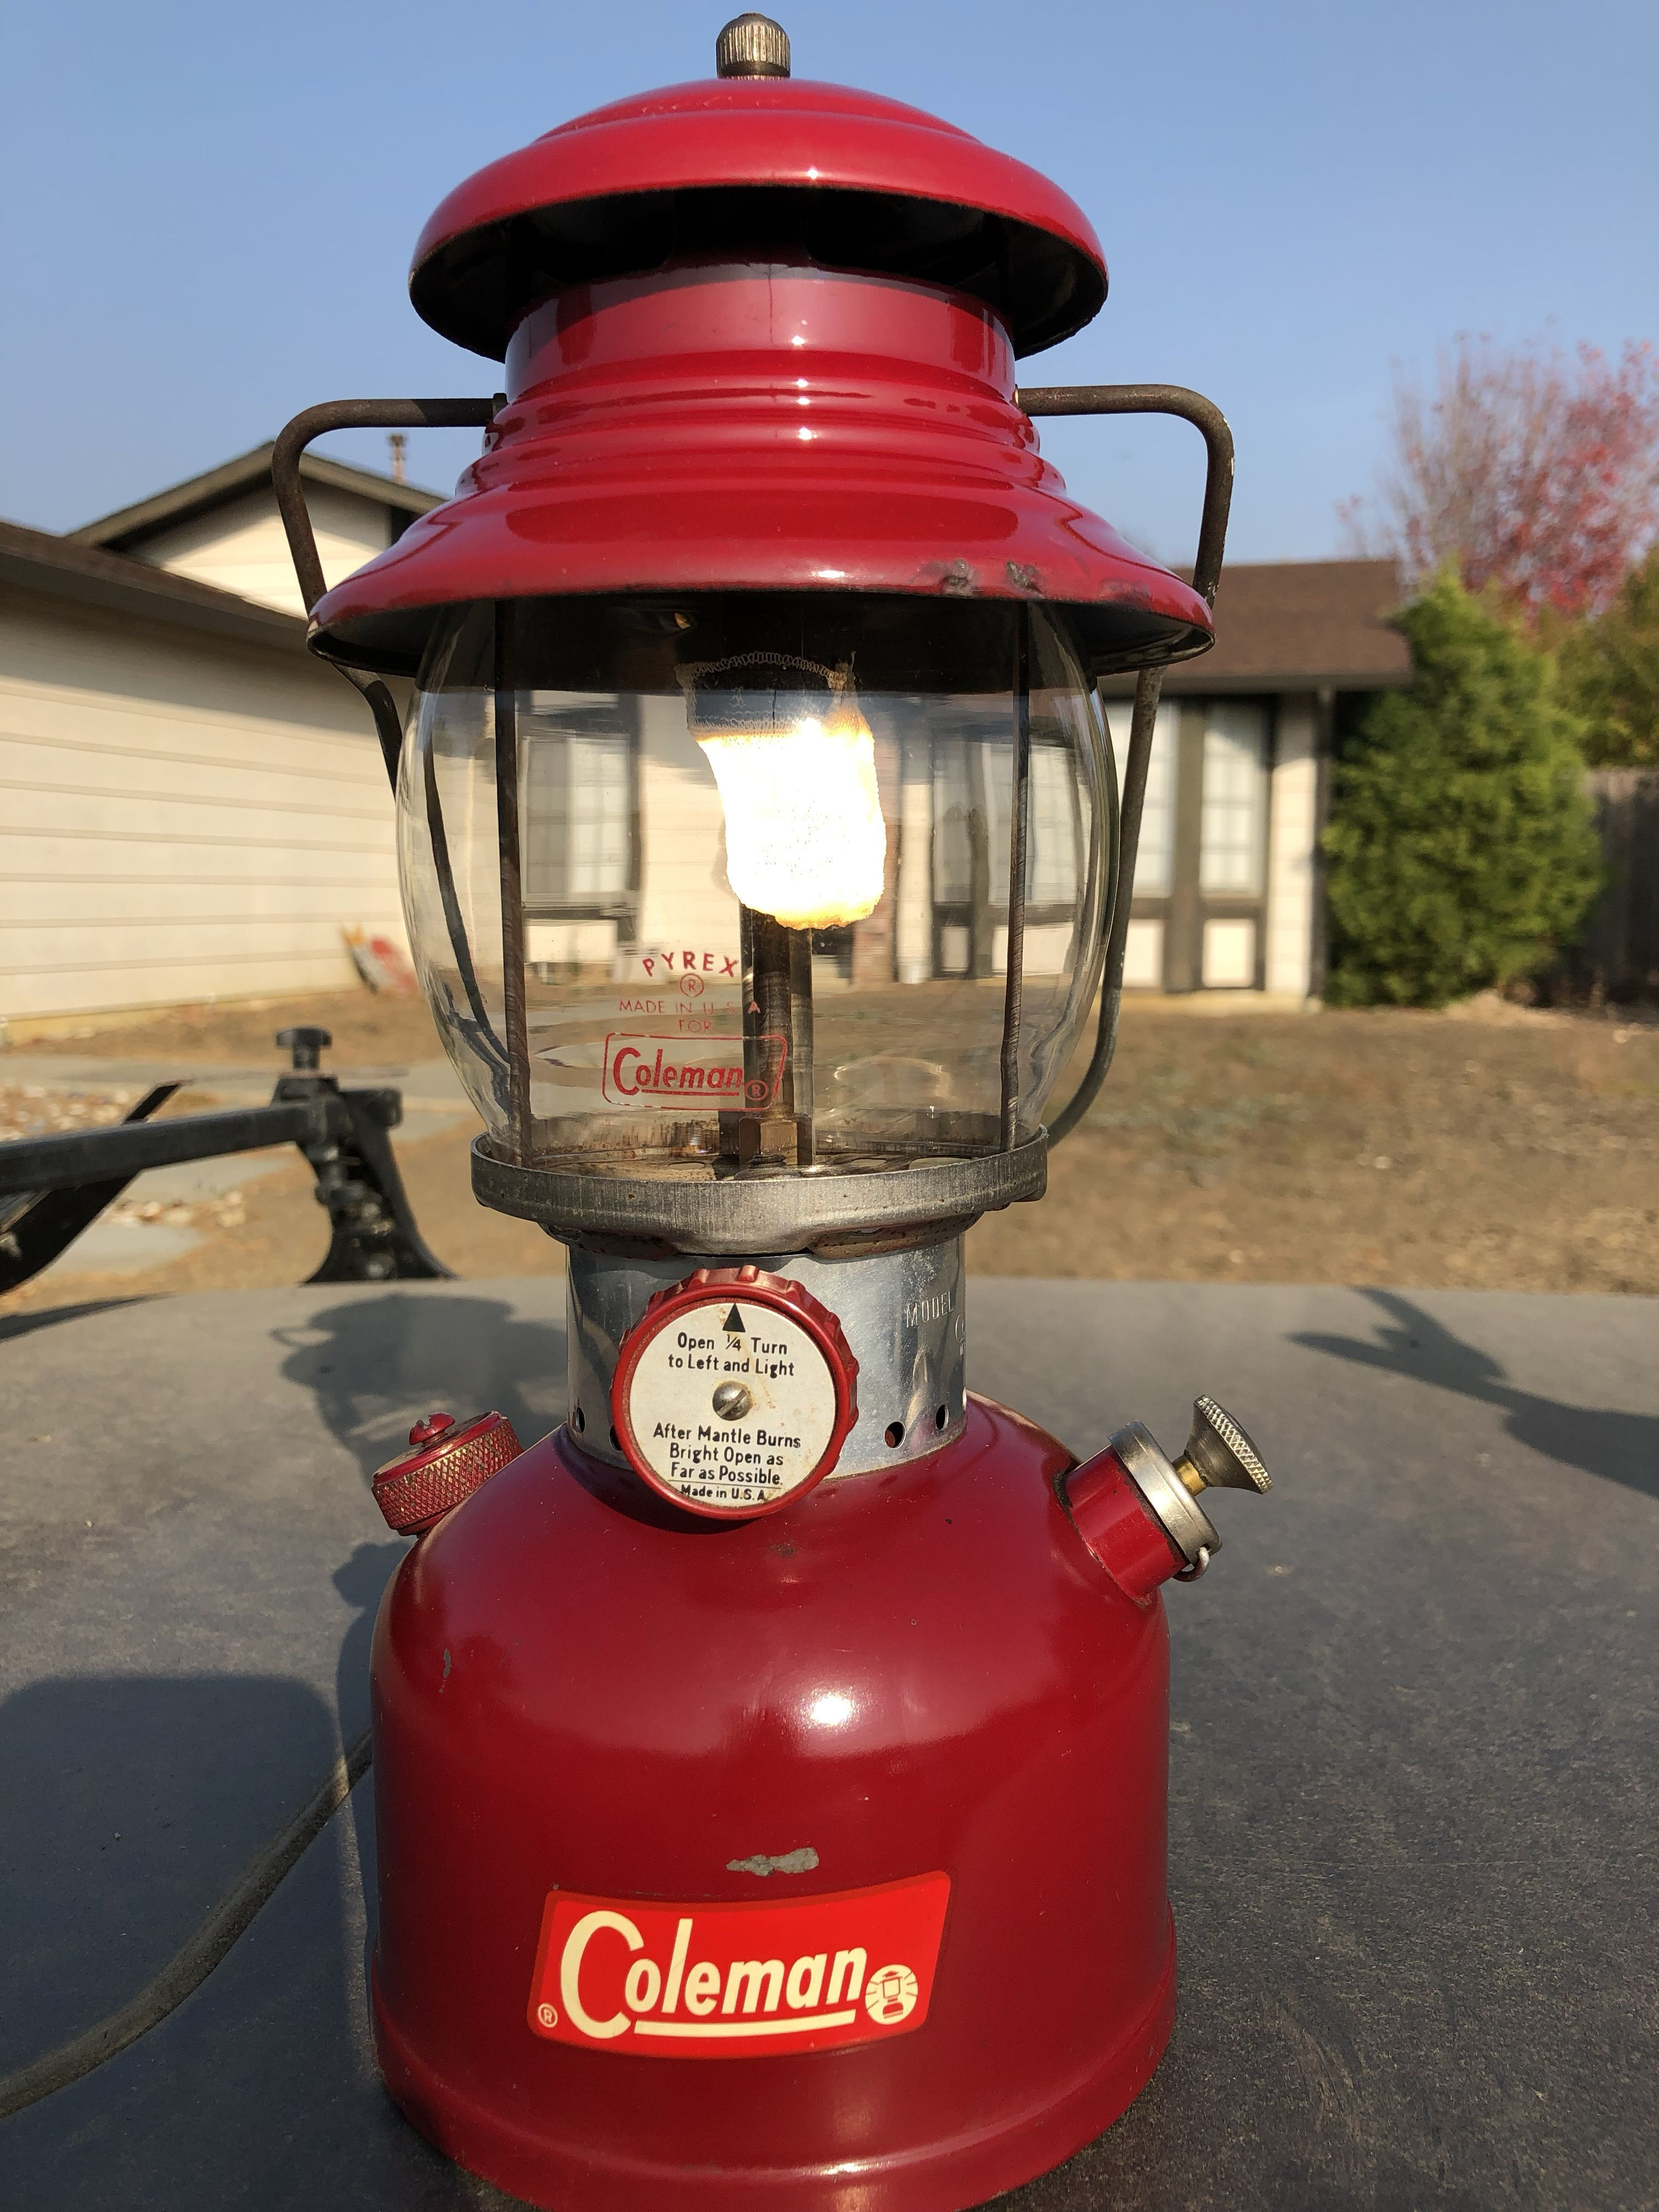 Coleman 200a White Fuel Camping Lantern  Dark red in color